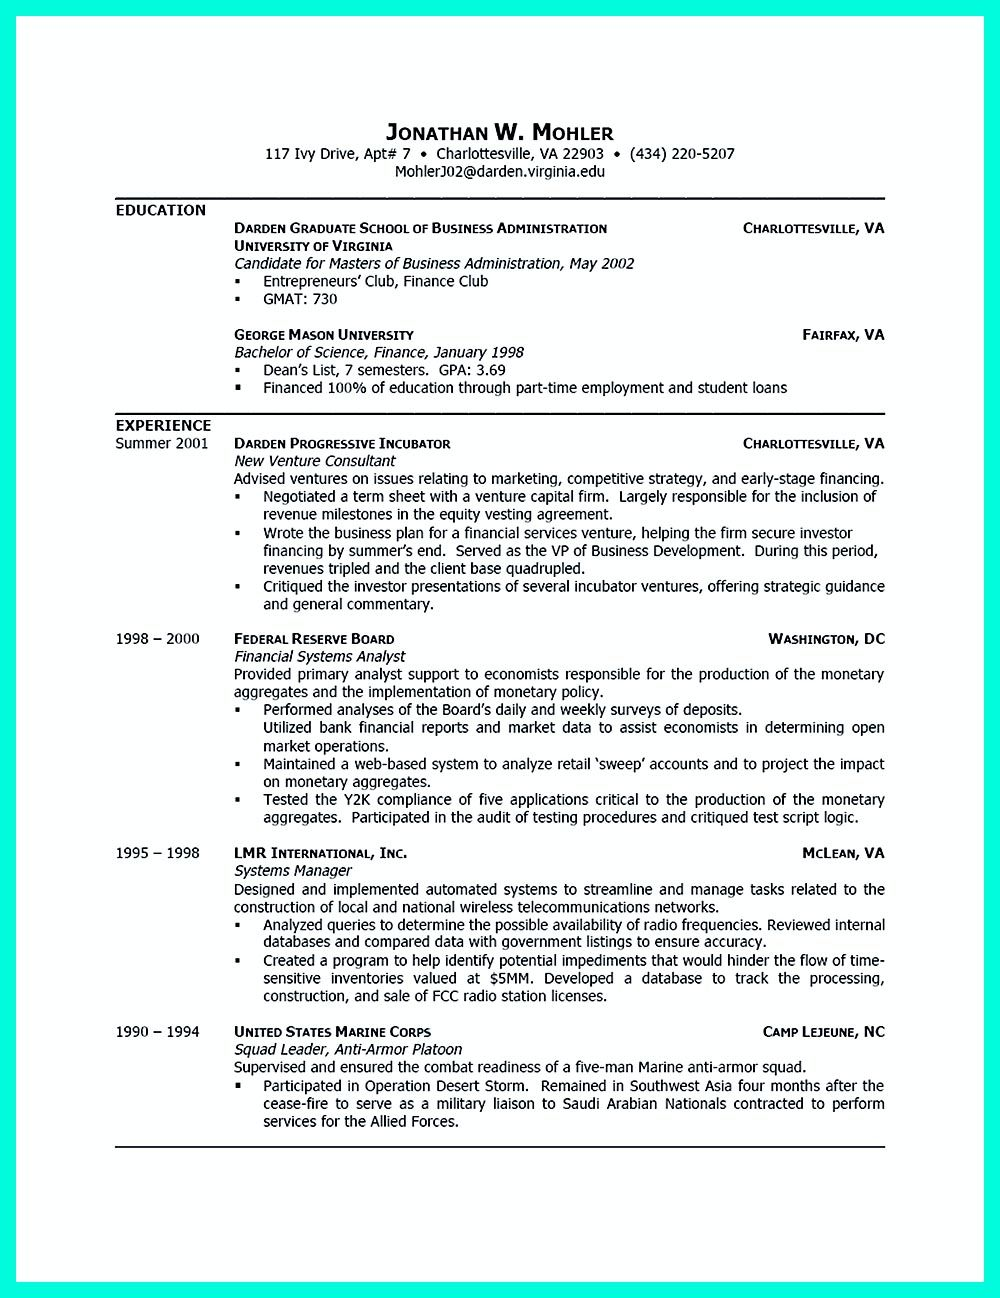 Pin on Resume Sample Template And Format | Pinterest | College ...